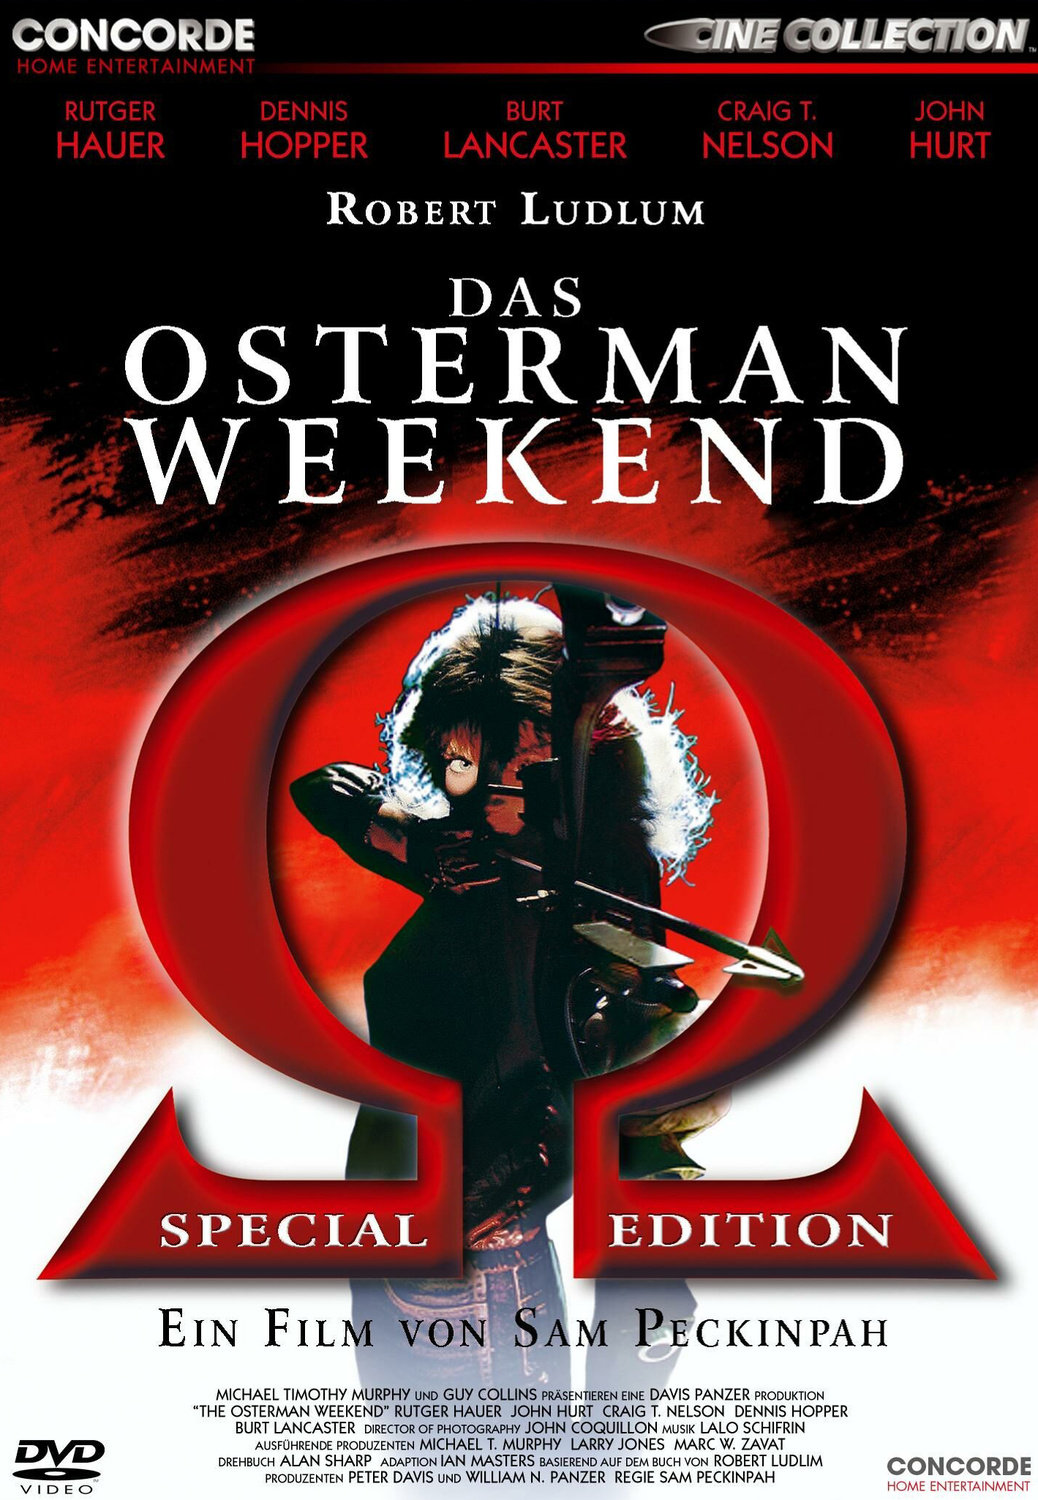 Osterman Weekend, Special Edition